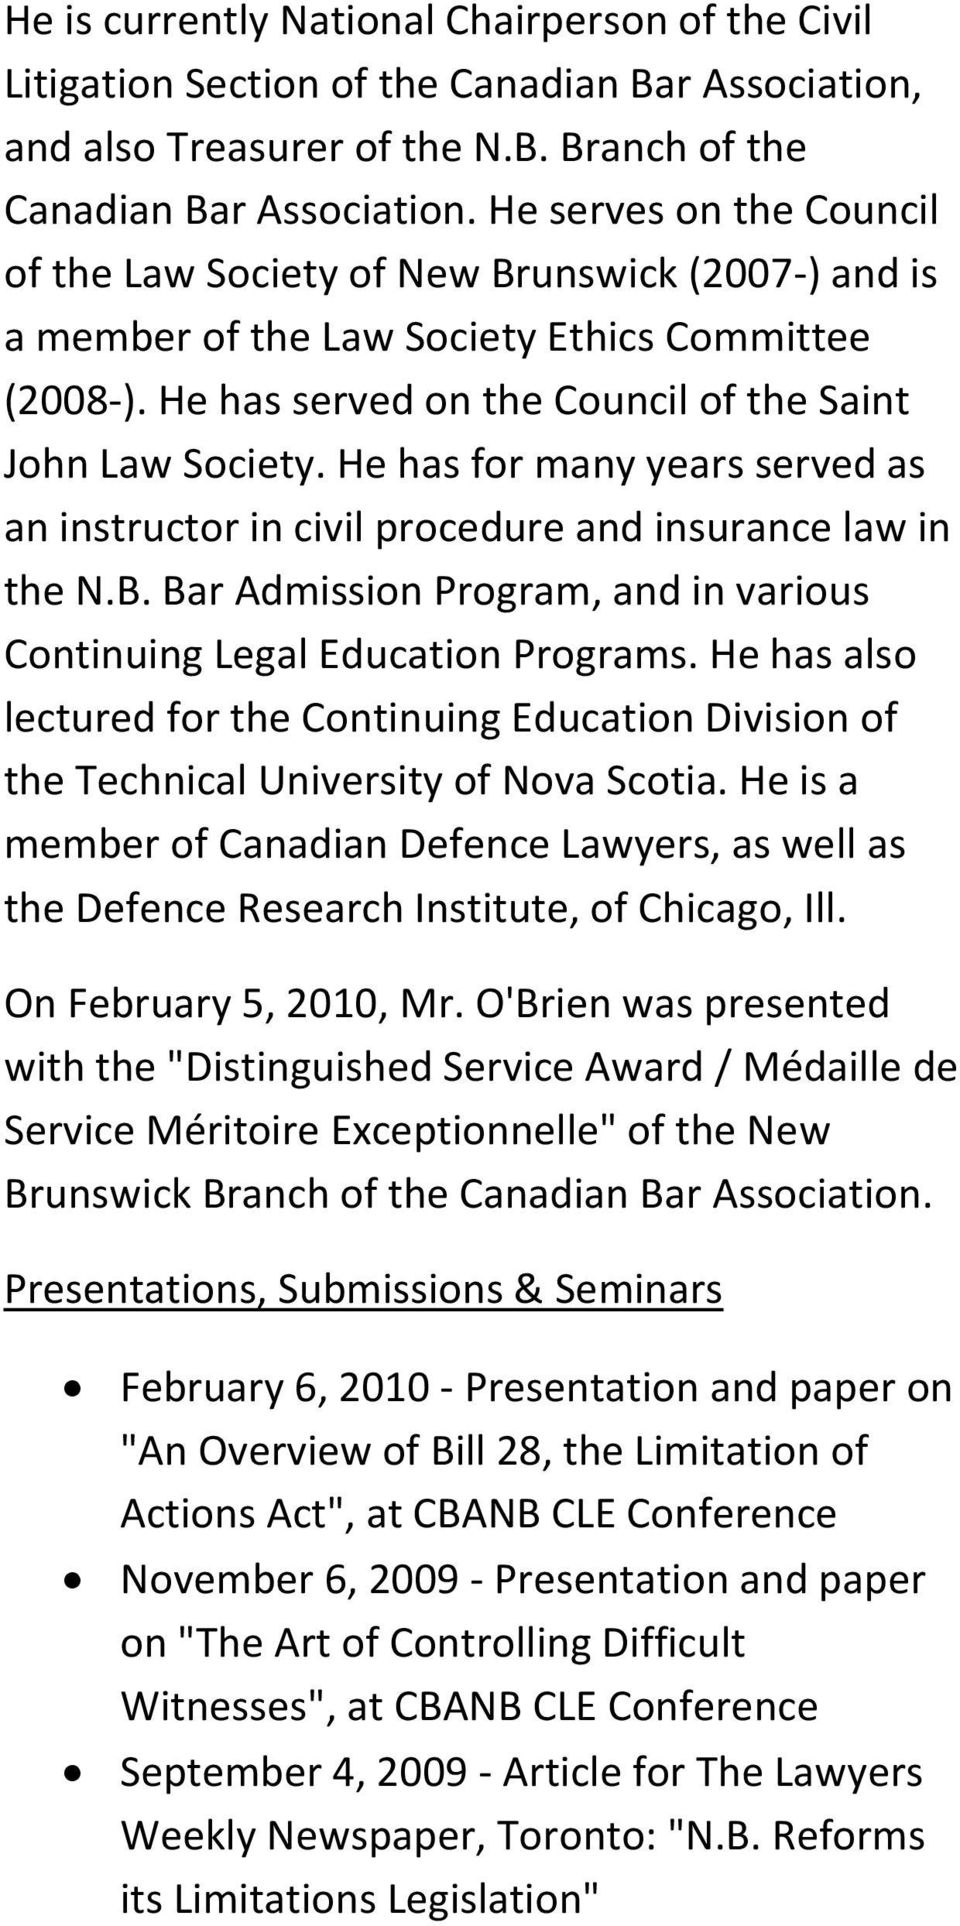 He has for many years served as an instructor in civil procedure and insurance law in the N.B. Bar Admission Program, and in various Continuing Legal Education Programs.